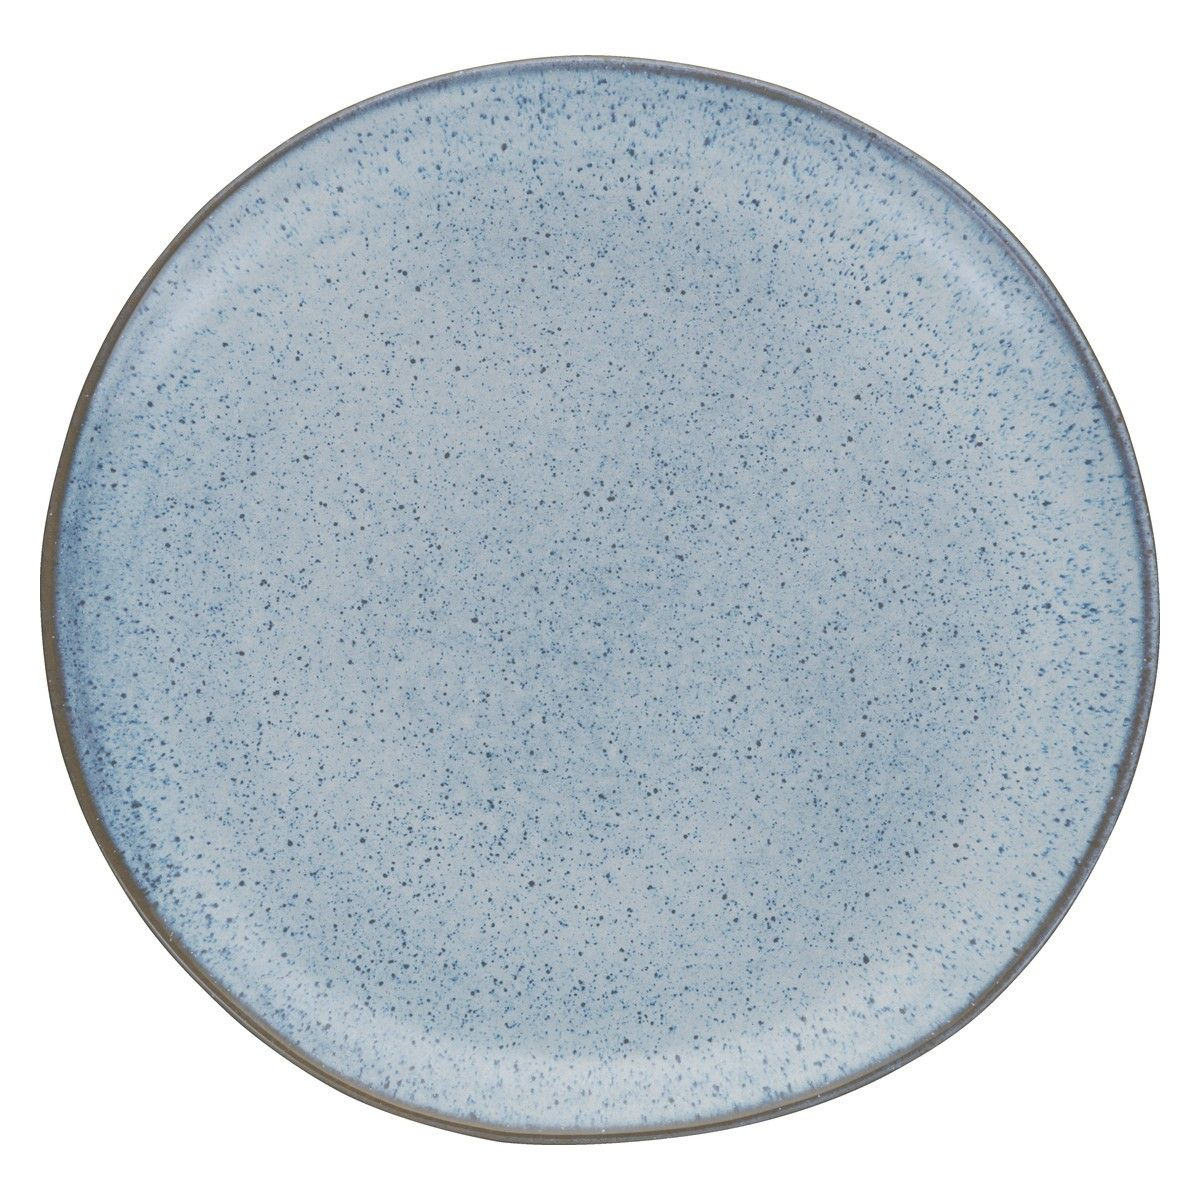 OLMO Light blue speckled dinner plate 27cm | Buy now at Habitat UK  sc 1 st  Pinterest & OLMO Light blue speckled dinner plate 27cm | Buy now at Habitat UK ...